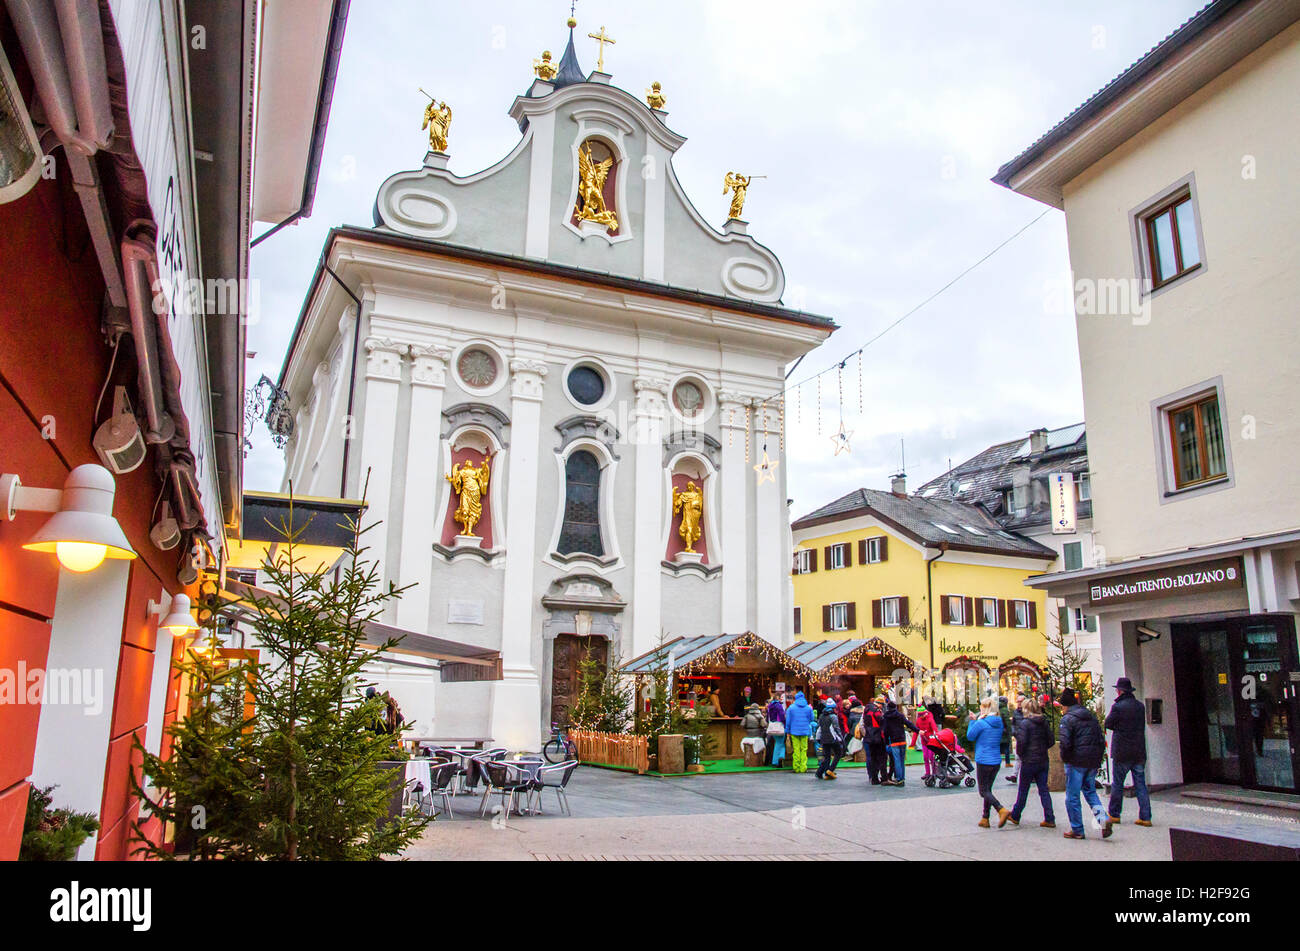 Brunico, Italy, 14 December 2014: christmas markets in the central square of San Candido with the main church's - Stock Image